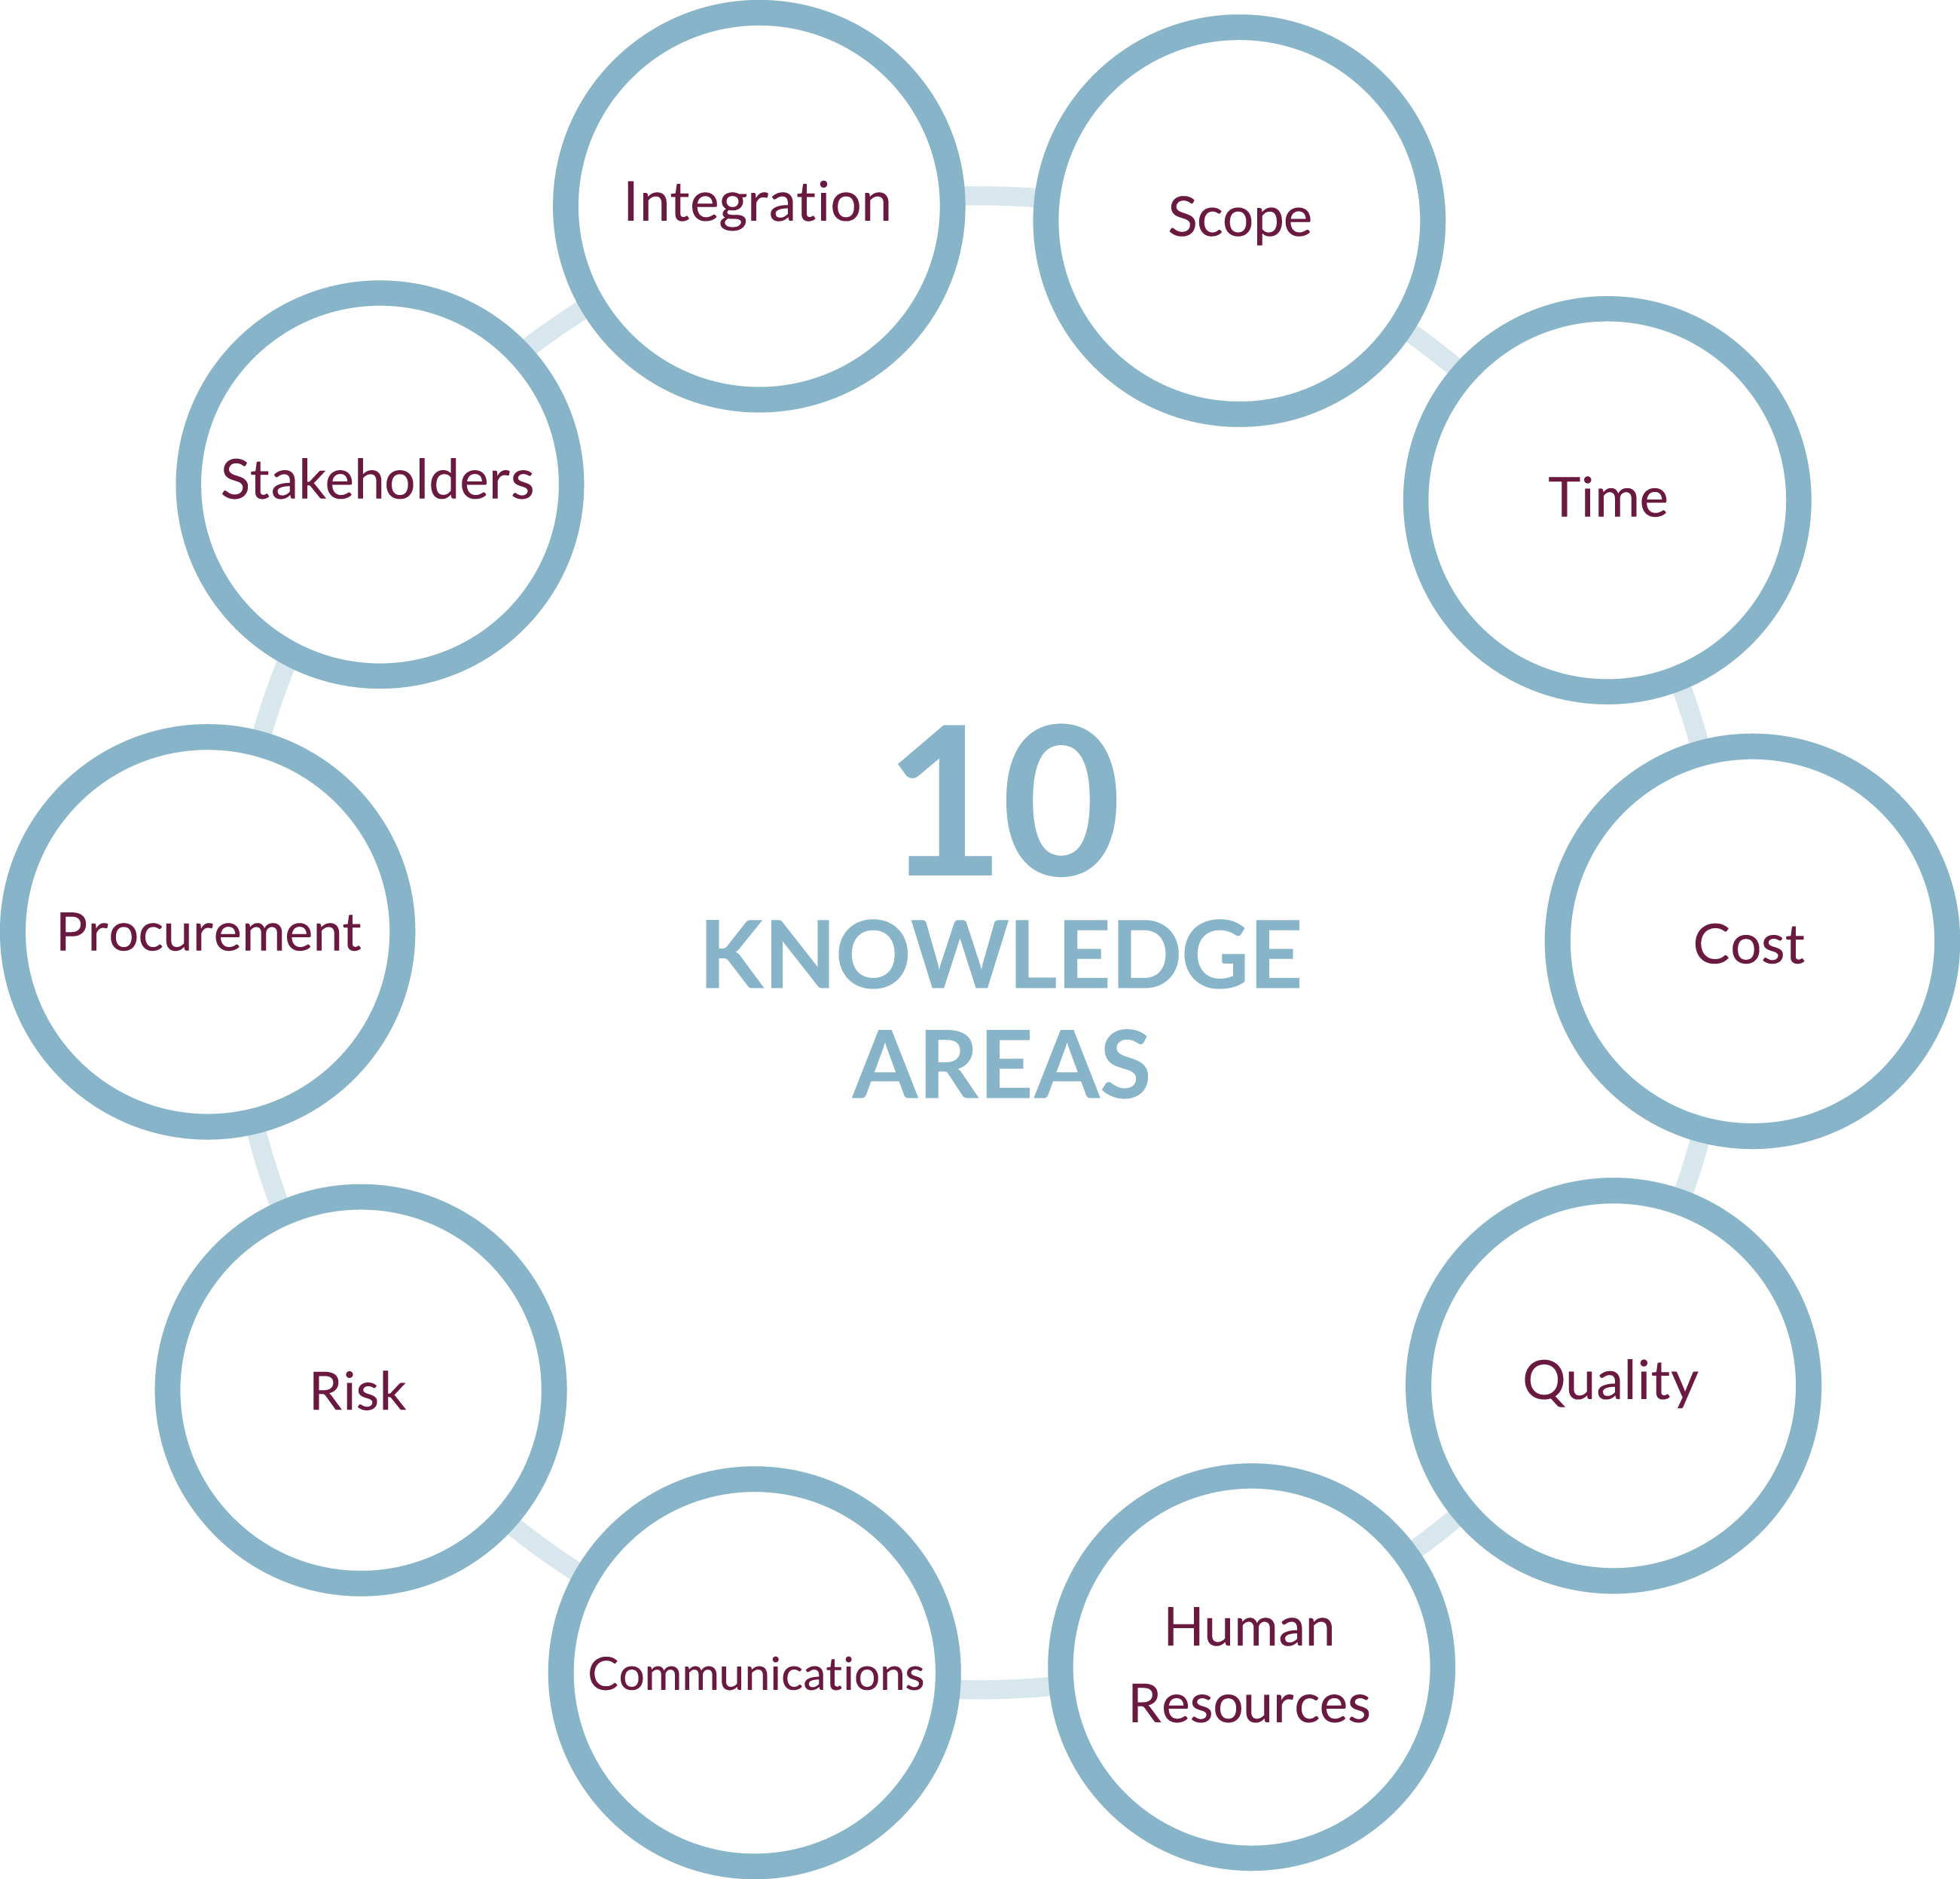 Masters in Project Management - 10 Knowledge Areas